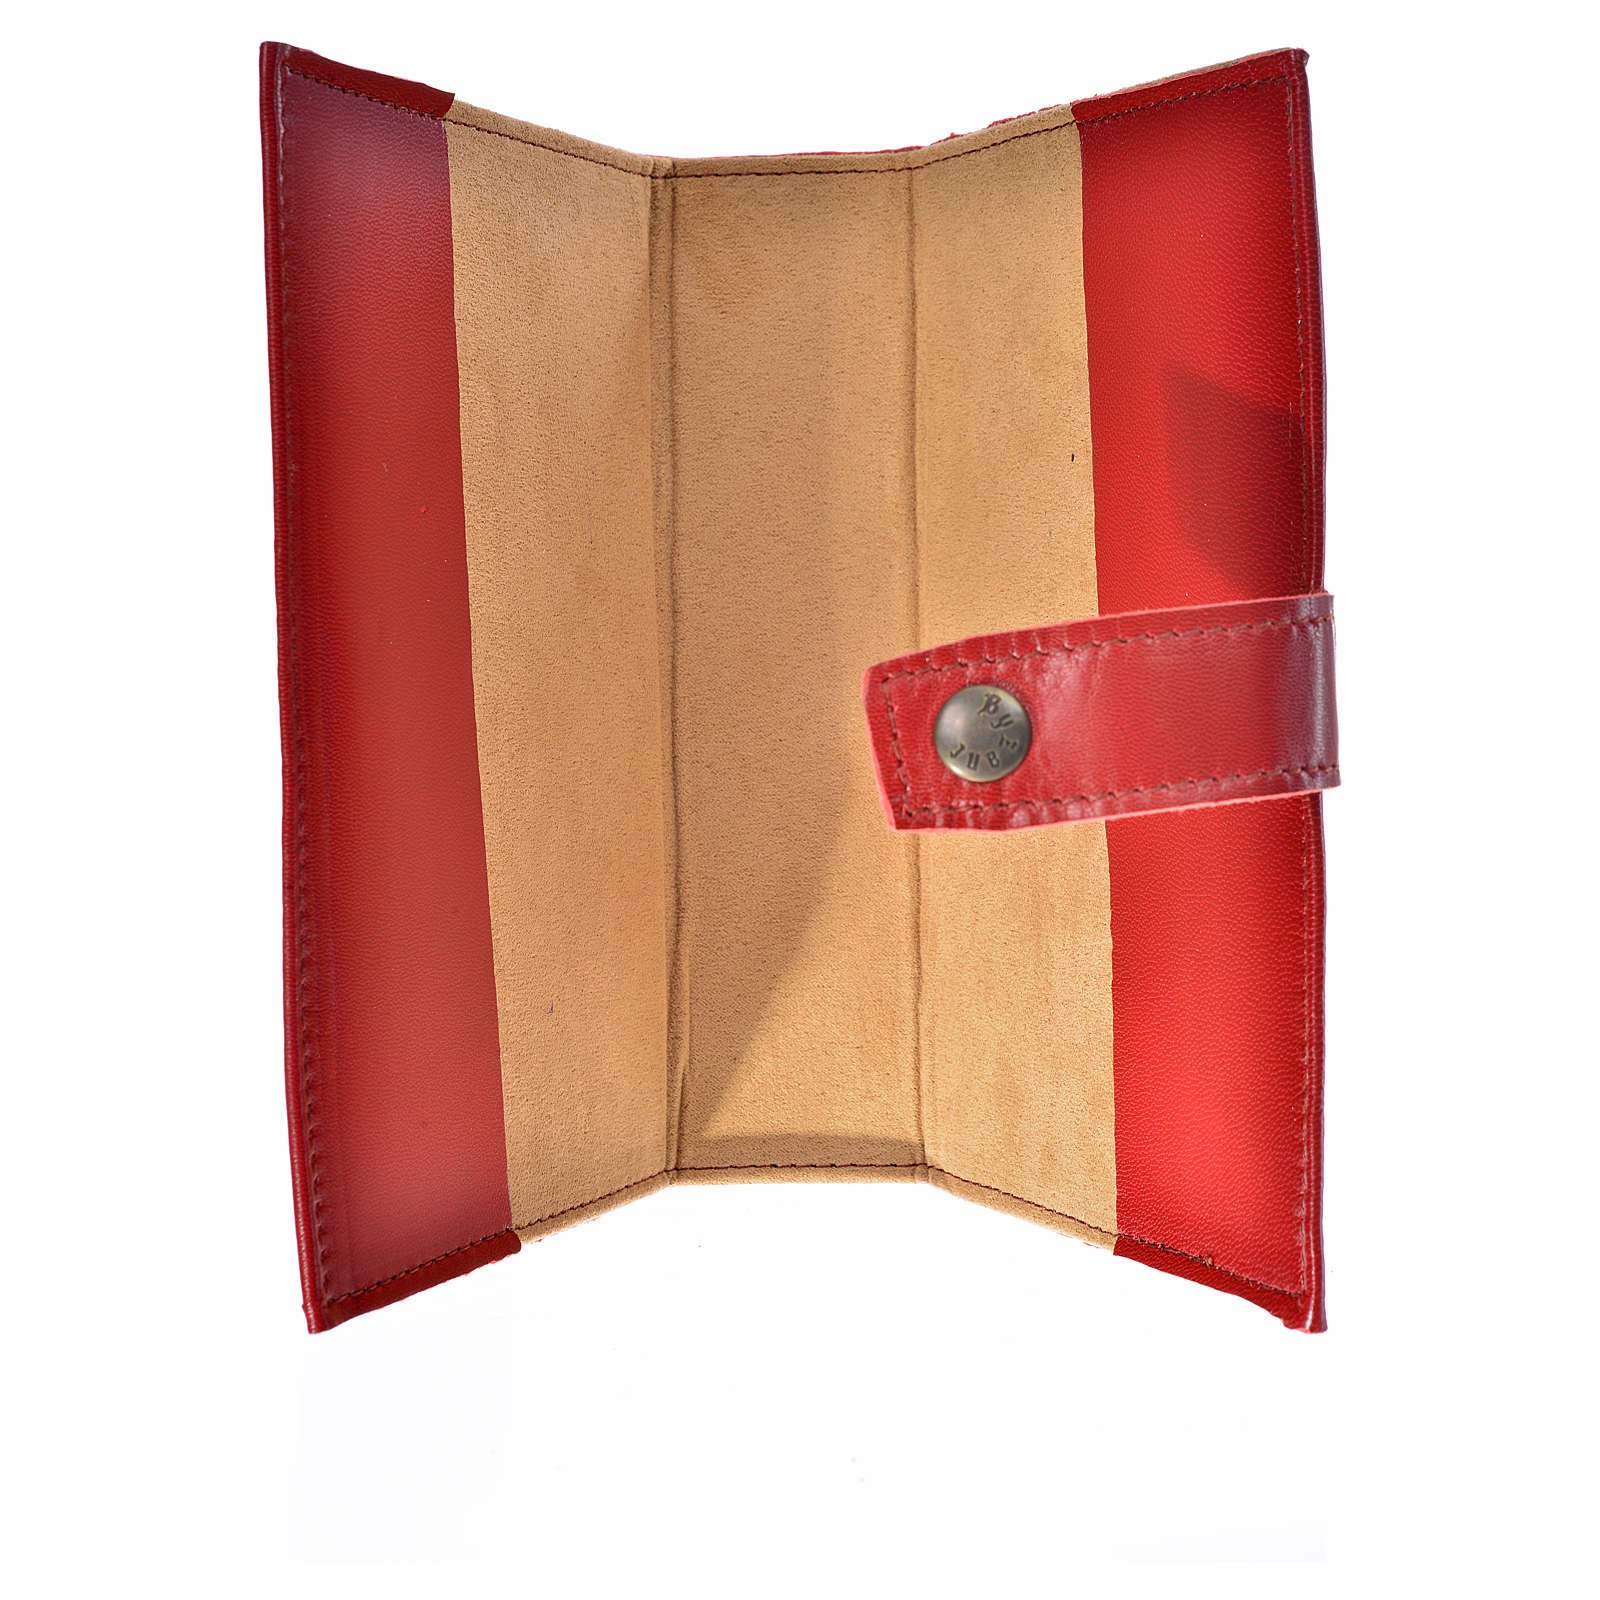 Morning and Evening Prayer cover red leather Our Lady of Kiko 4